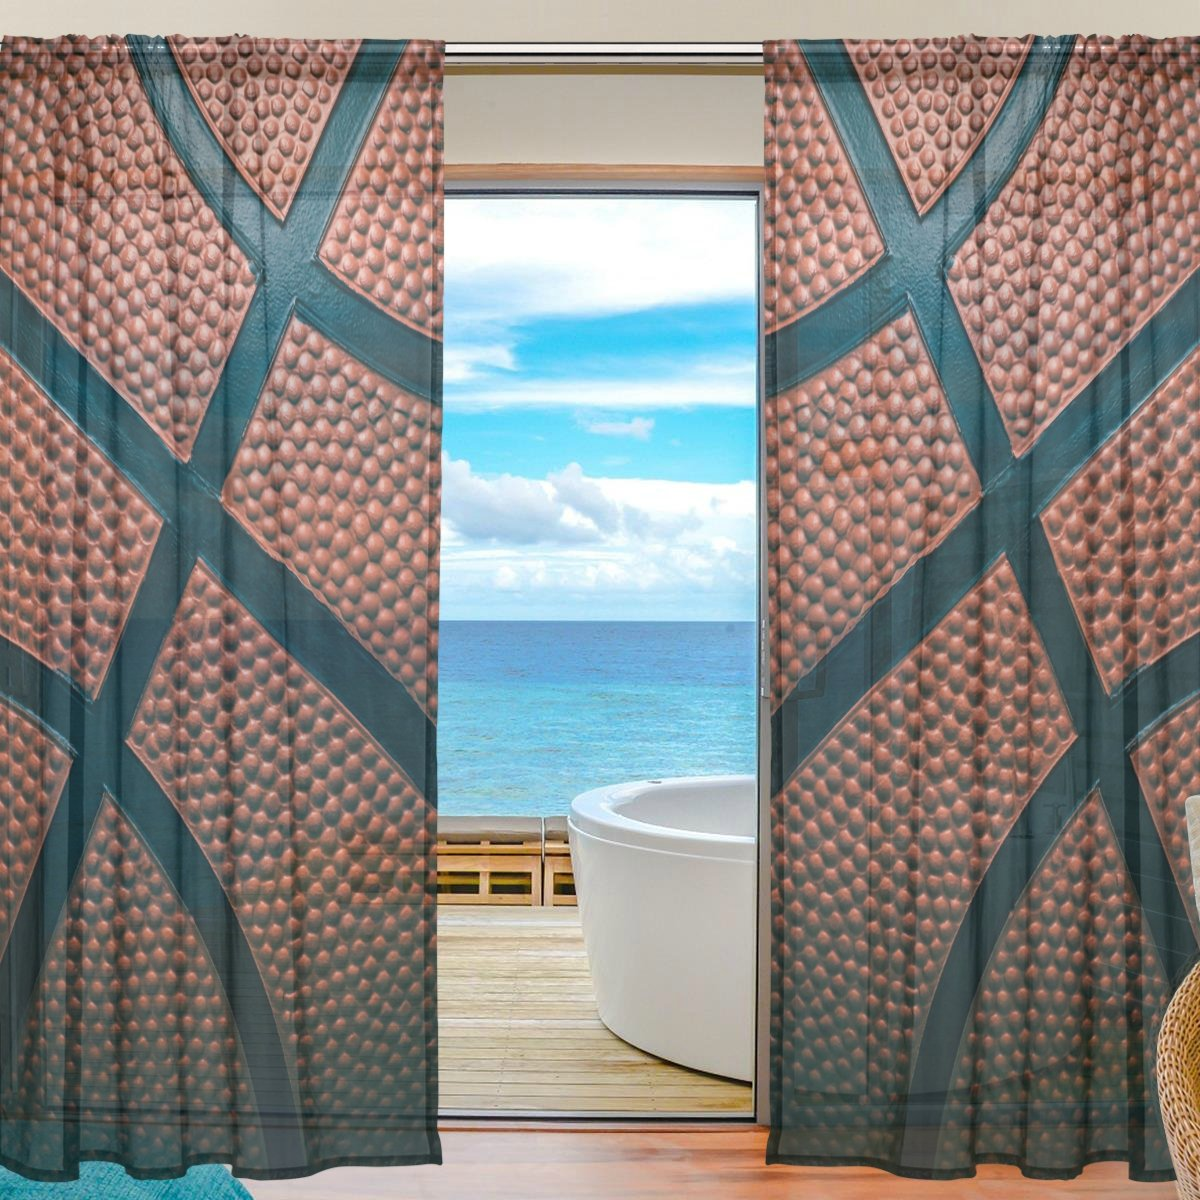 SEULIFE Window Sheer Curtain, Sport Basketball Voile Curtain Drapes for Door Kitchen Living Room Bedroom 55x78 inches 2 Panels g4498047p112c126s167